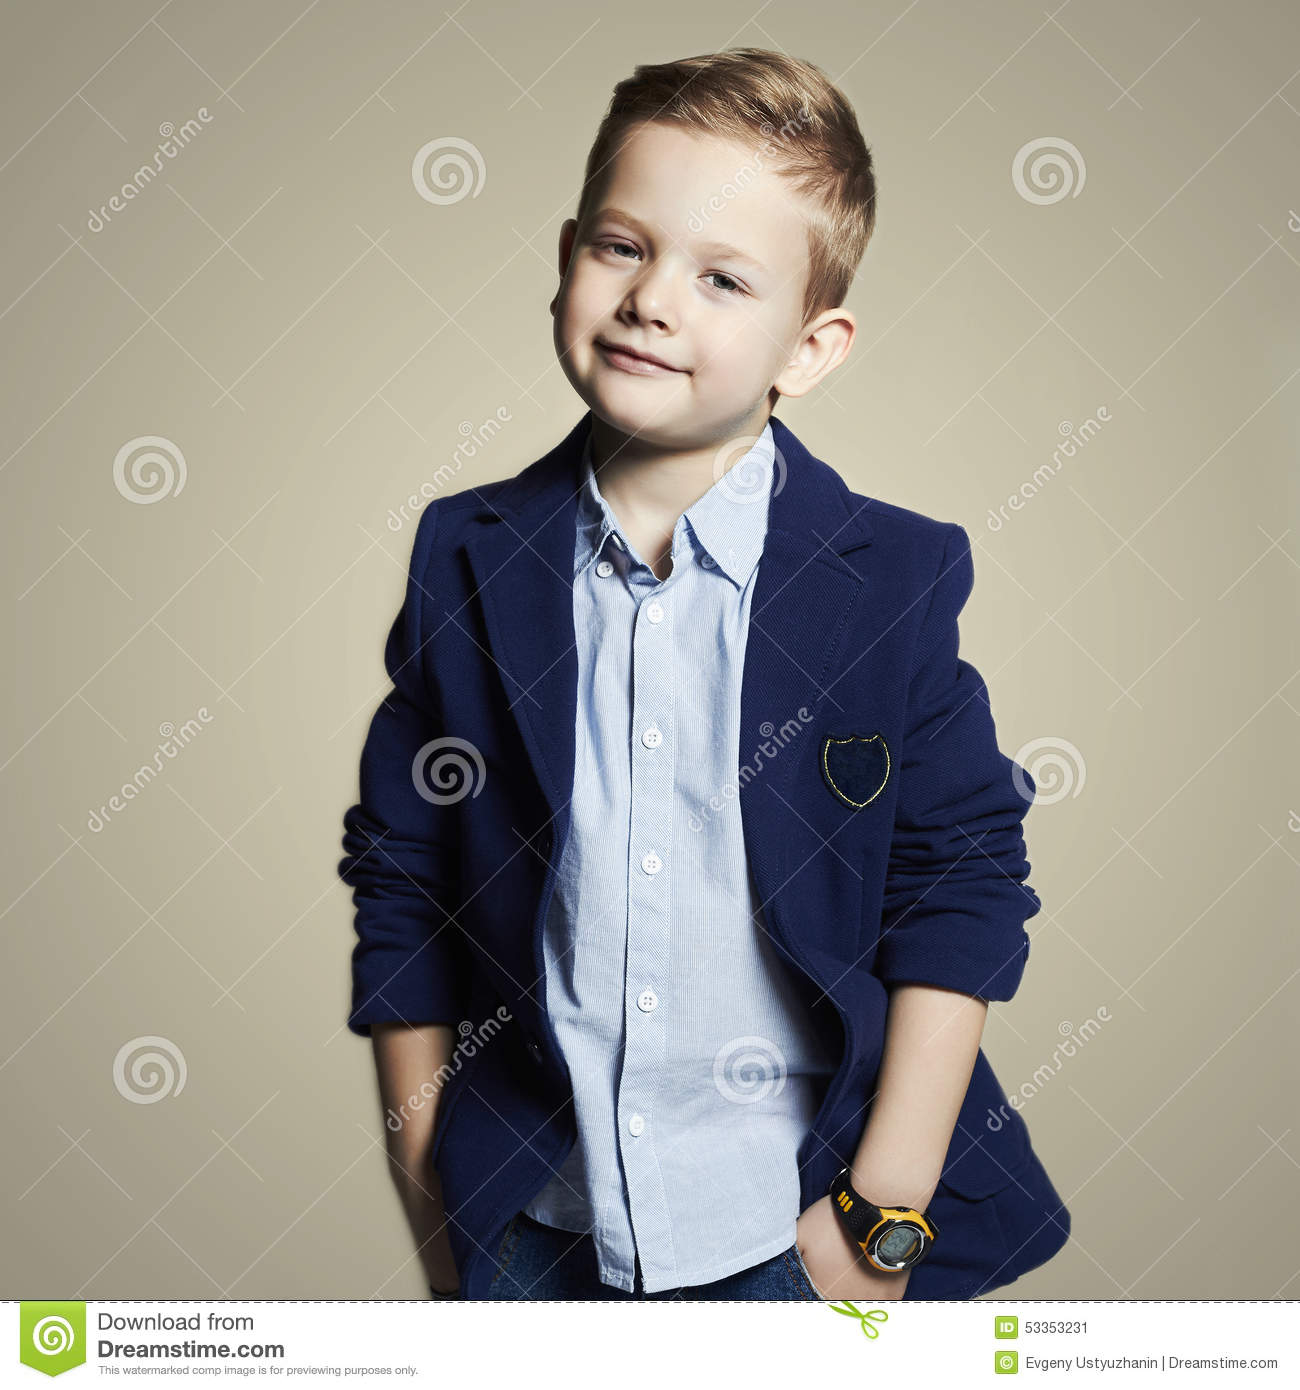 Fashionable Little Boystylish Child In Suit Stock Photo